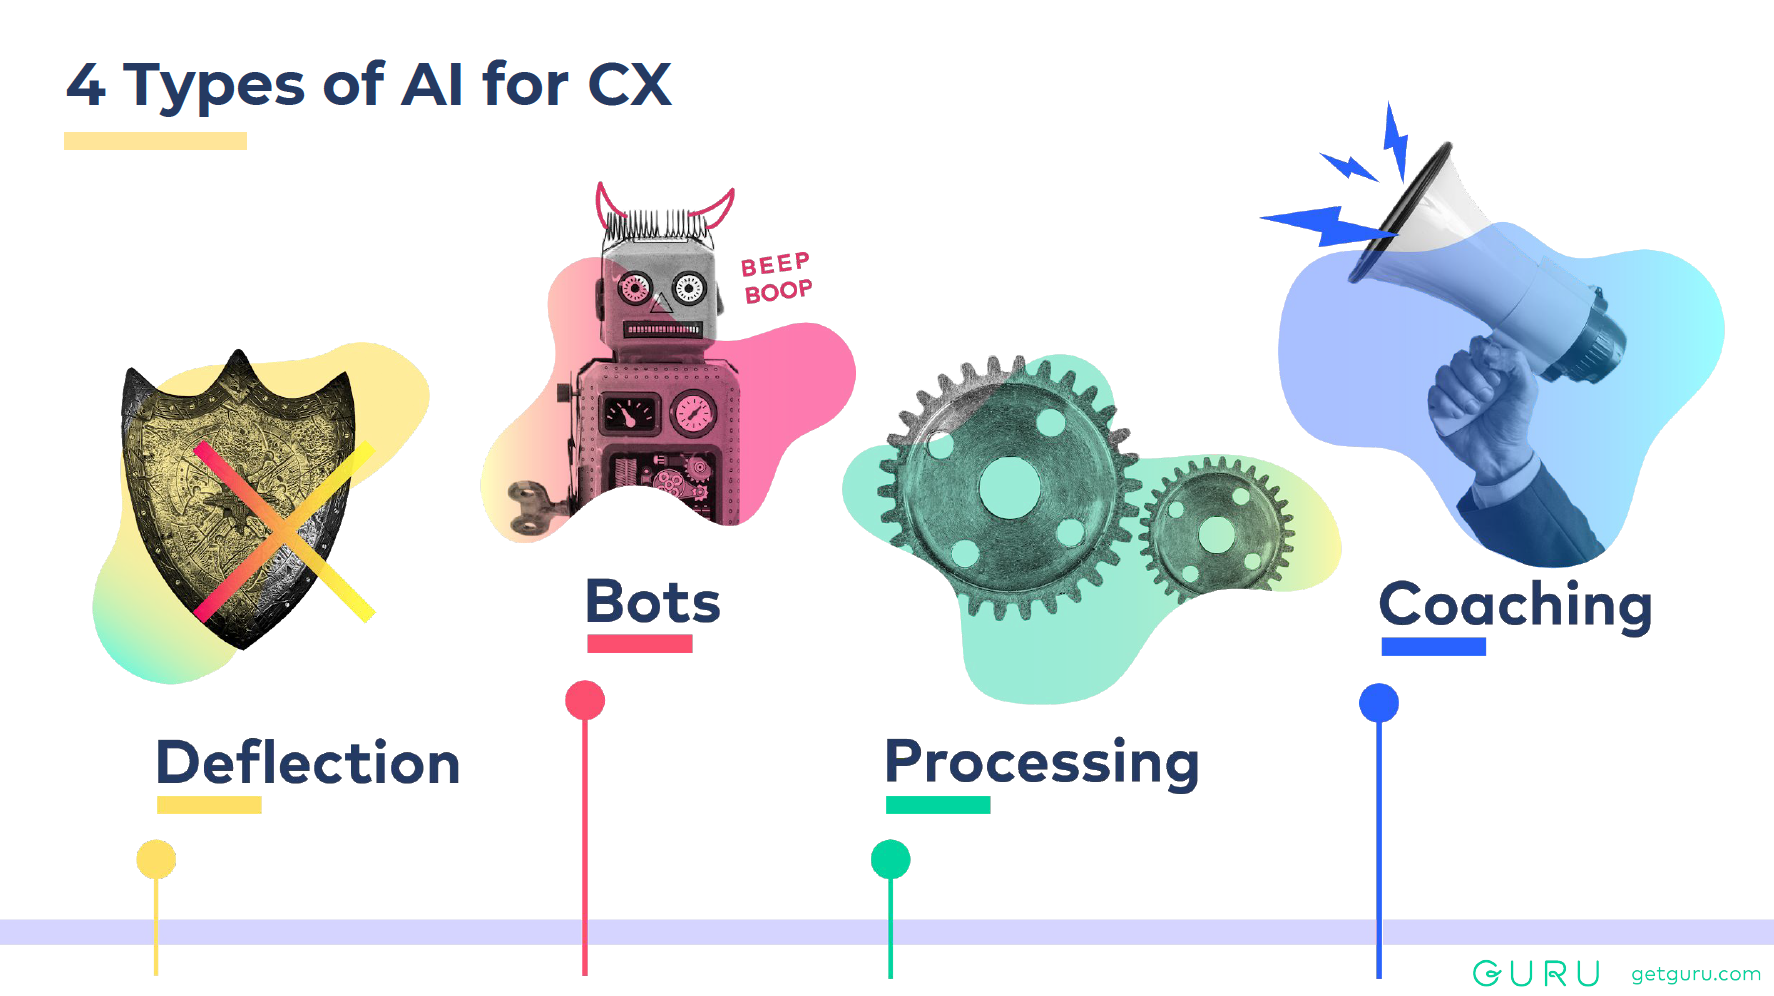 4 Types of AI